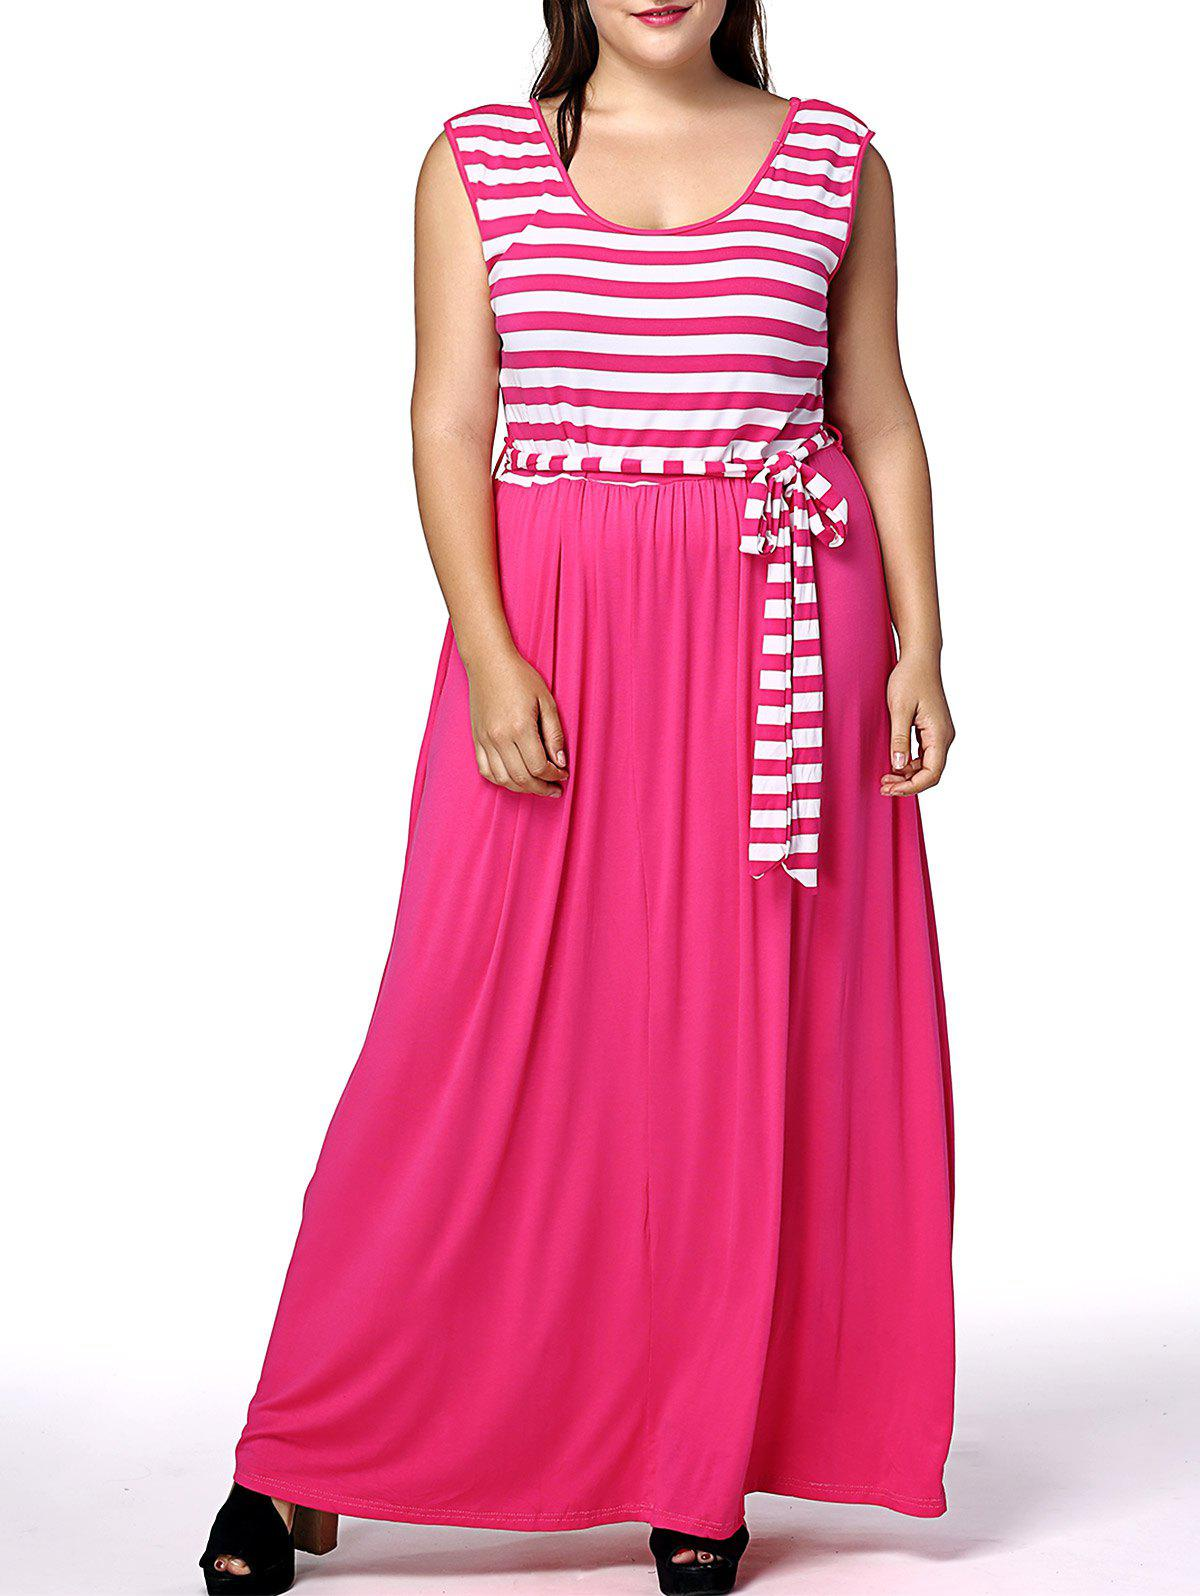 Stylish Scoop Neck Sleeveless Women's Plus Size Maternity Maxi Dress - ROSE XL